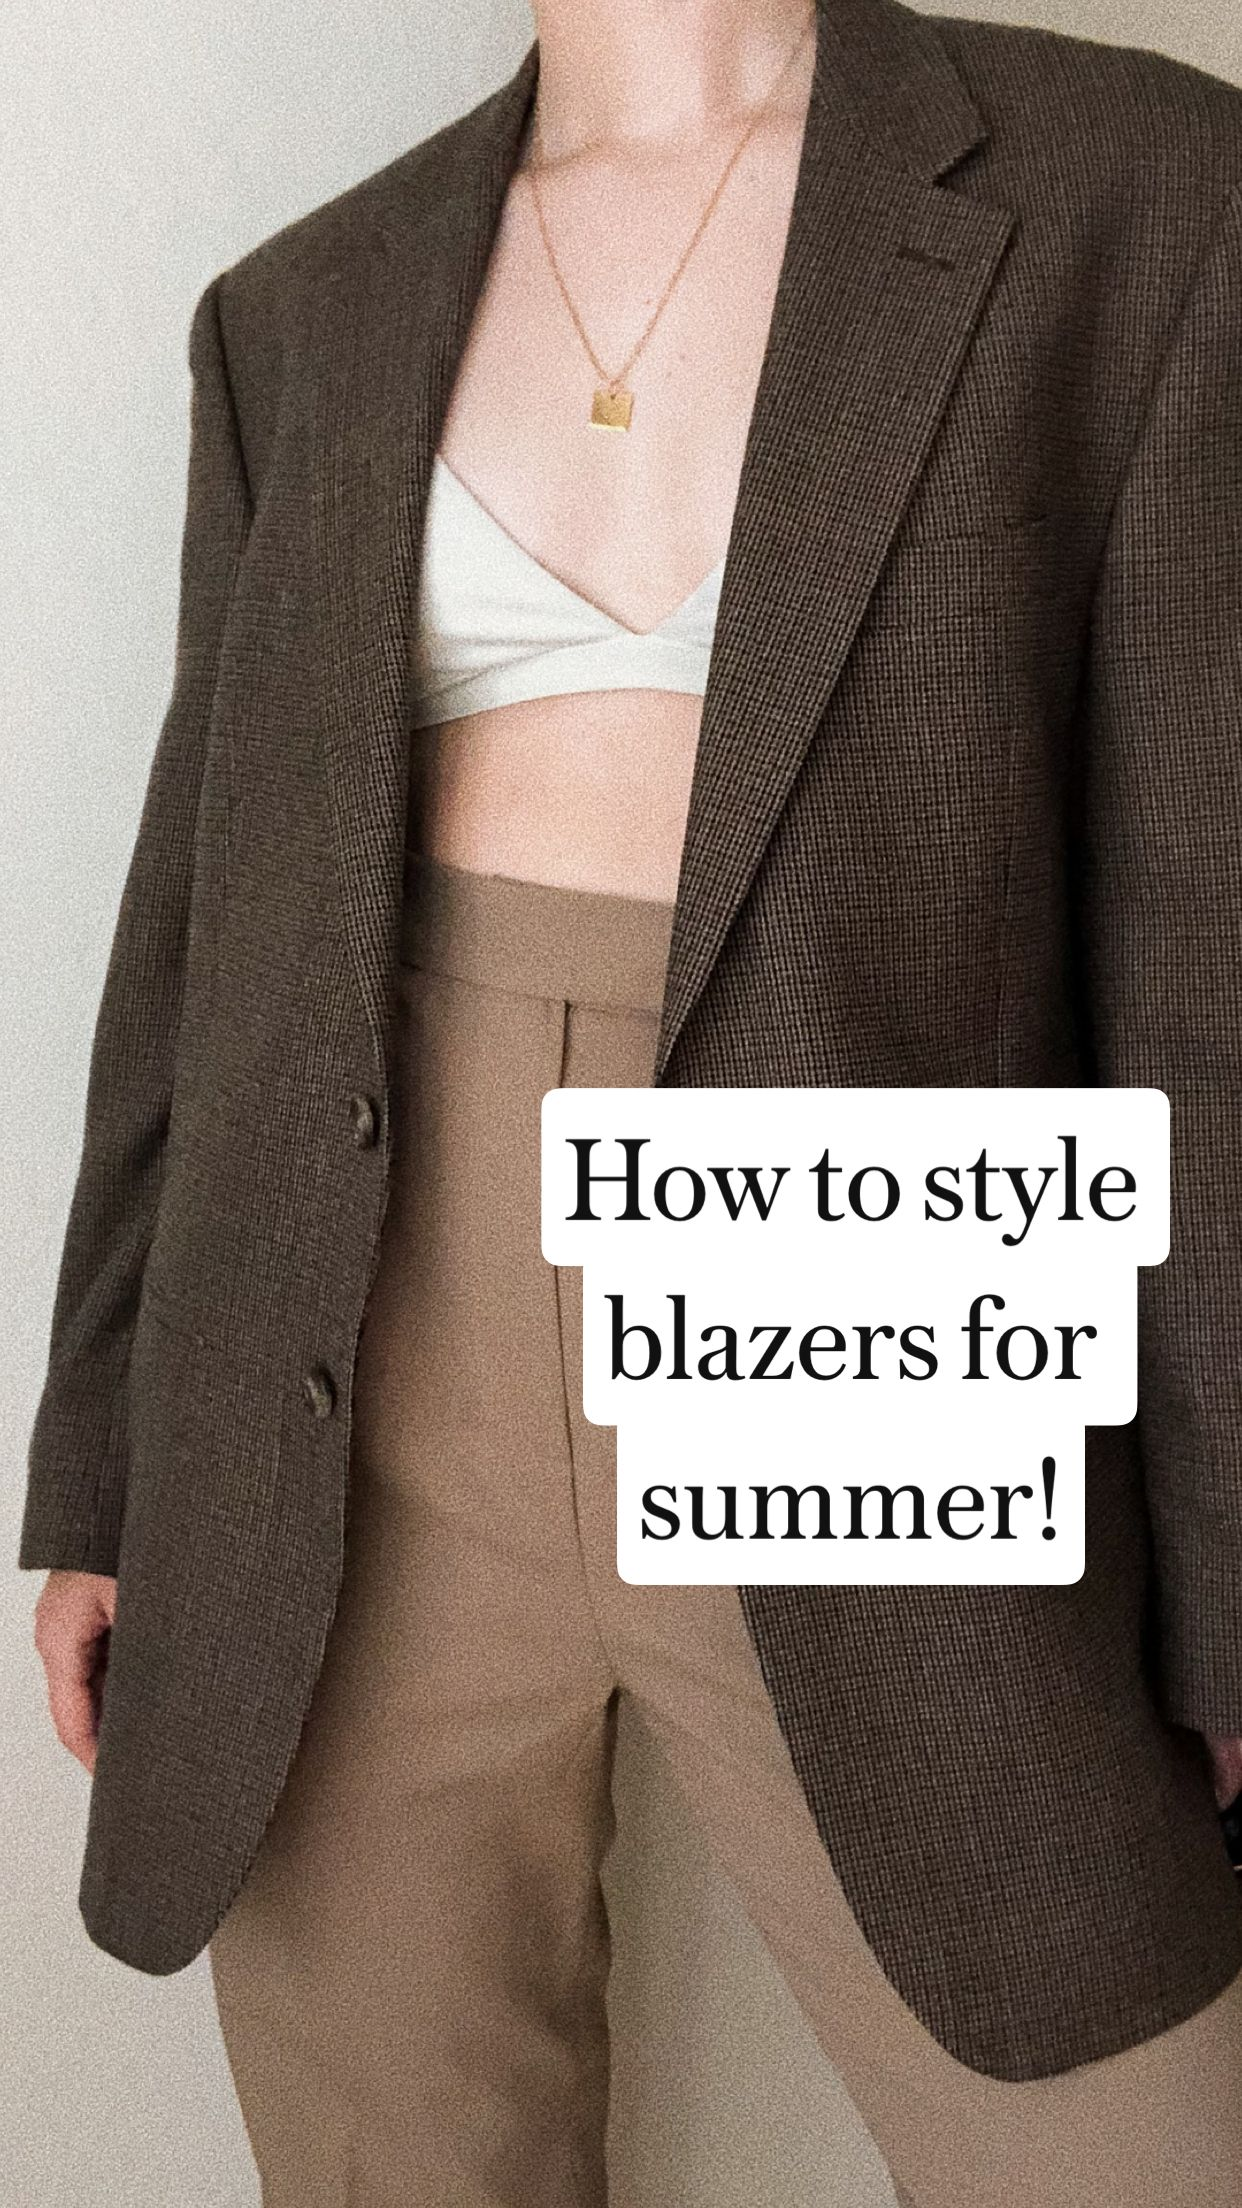 How to style blazers for summer!